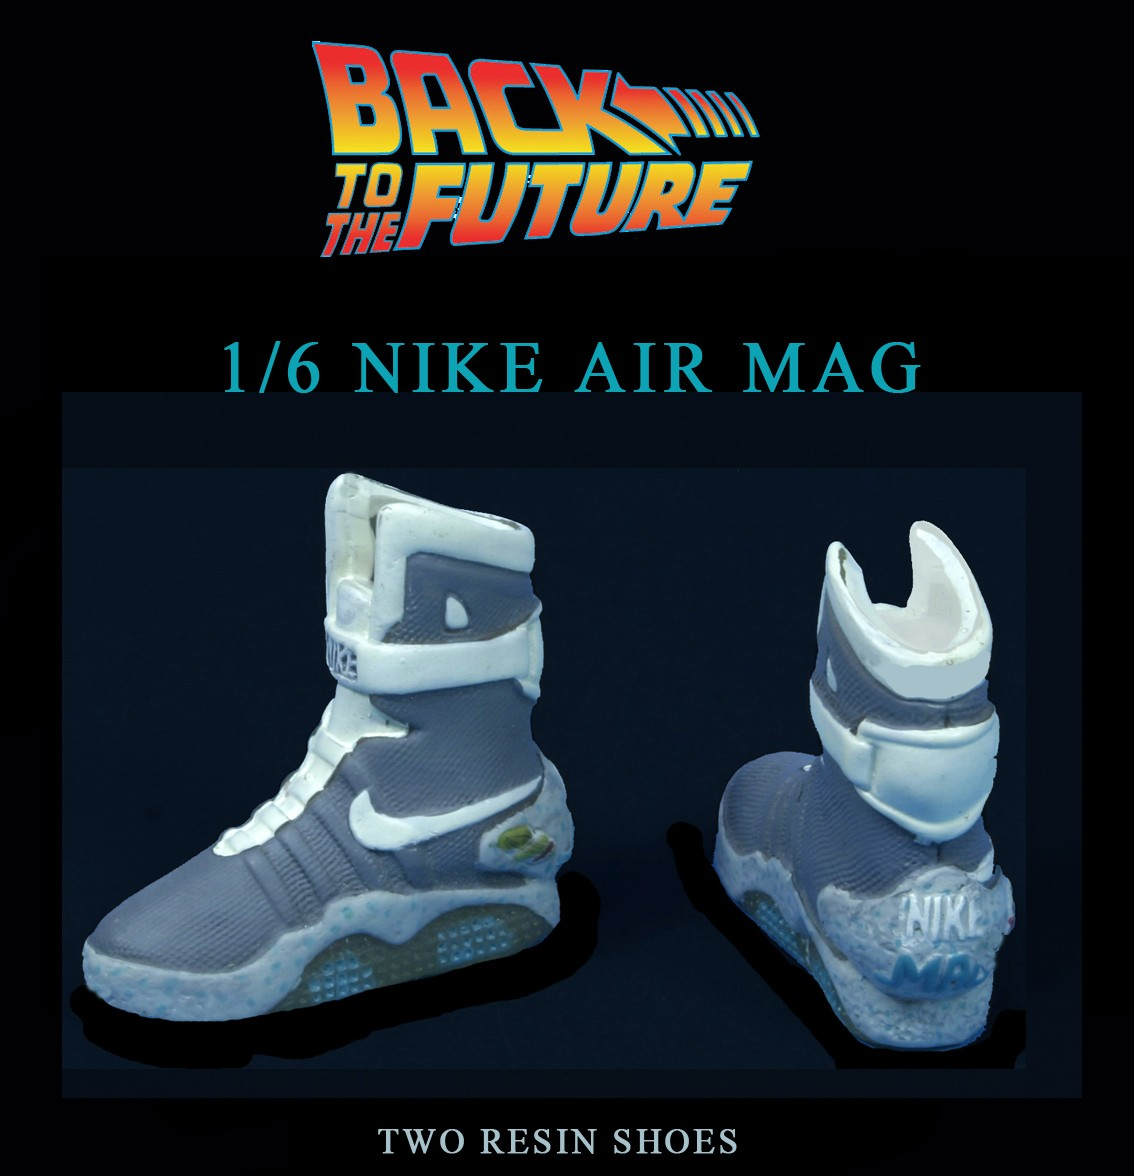 marty mcfly nike mags